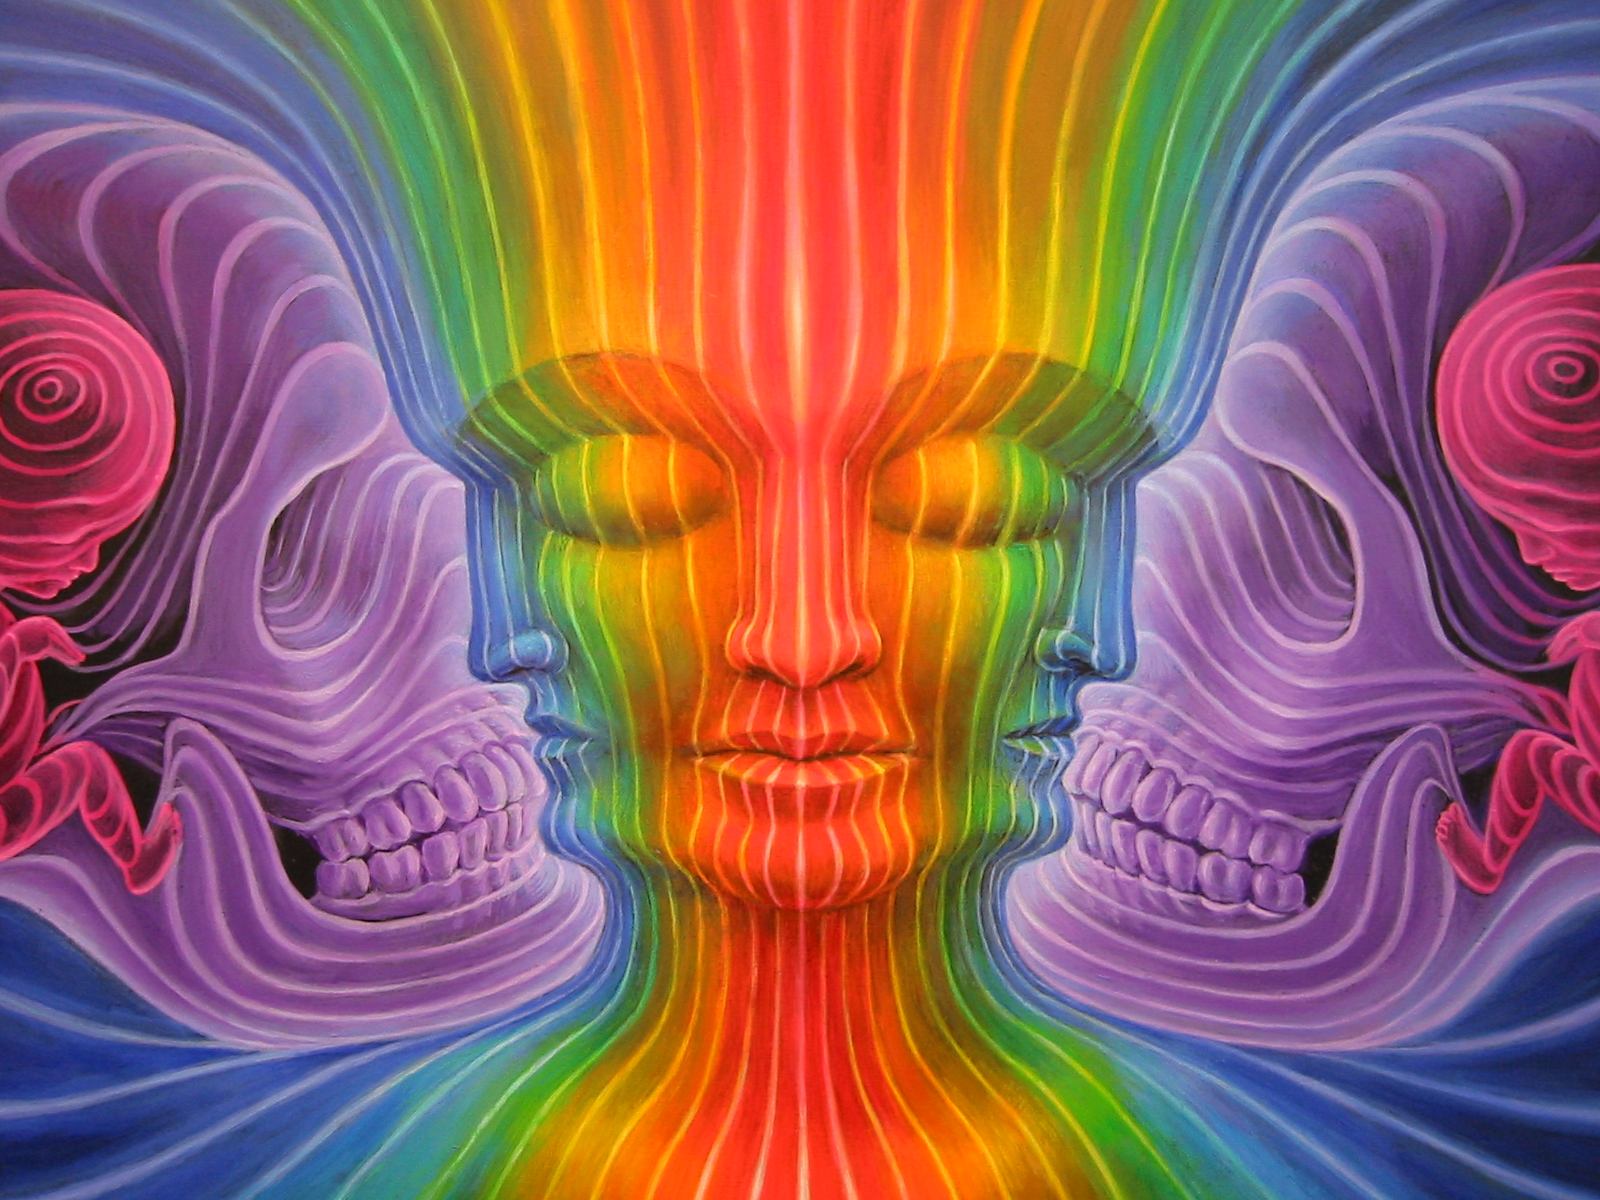 Psychedelic Spirit Paintings Alex Grey Art Gallery: Alex Grey Painting At Synergenesis I